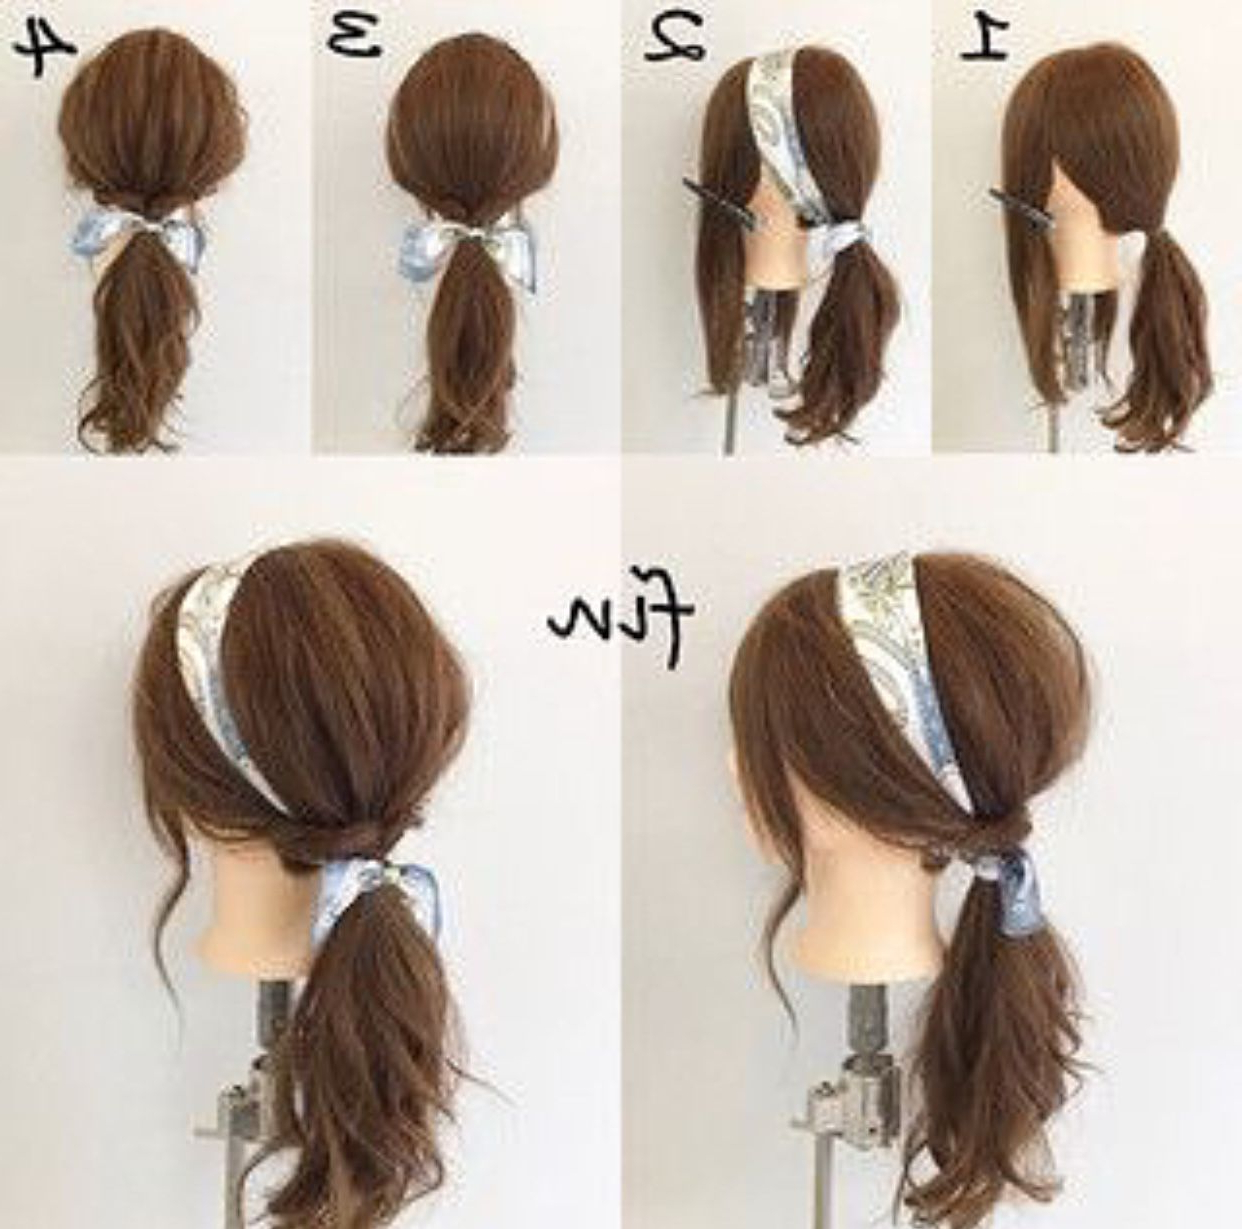 Most Popular Low Haloed Braided Hairstyles Throughout Nanchalee (Lnanchalee) On Pinterest (View 13 of 20)